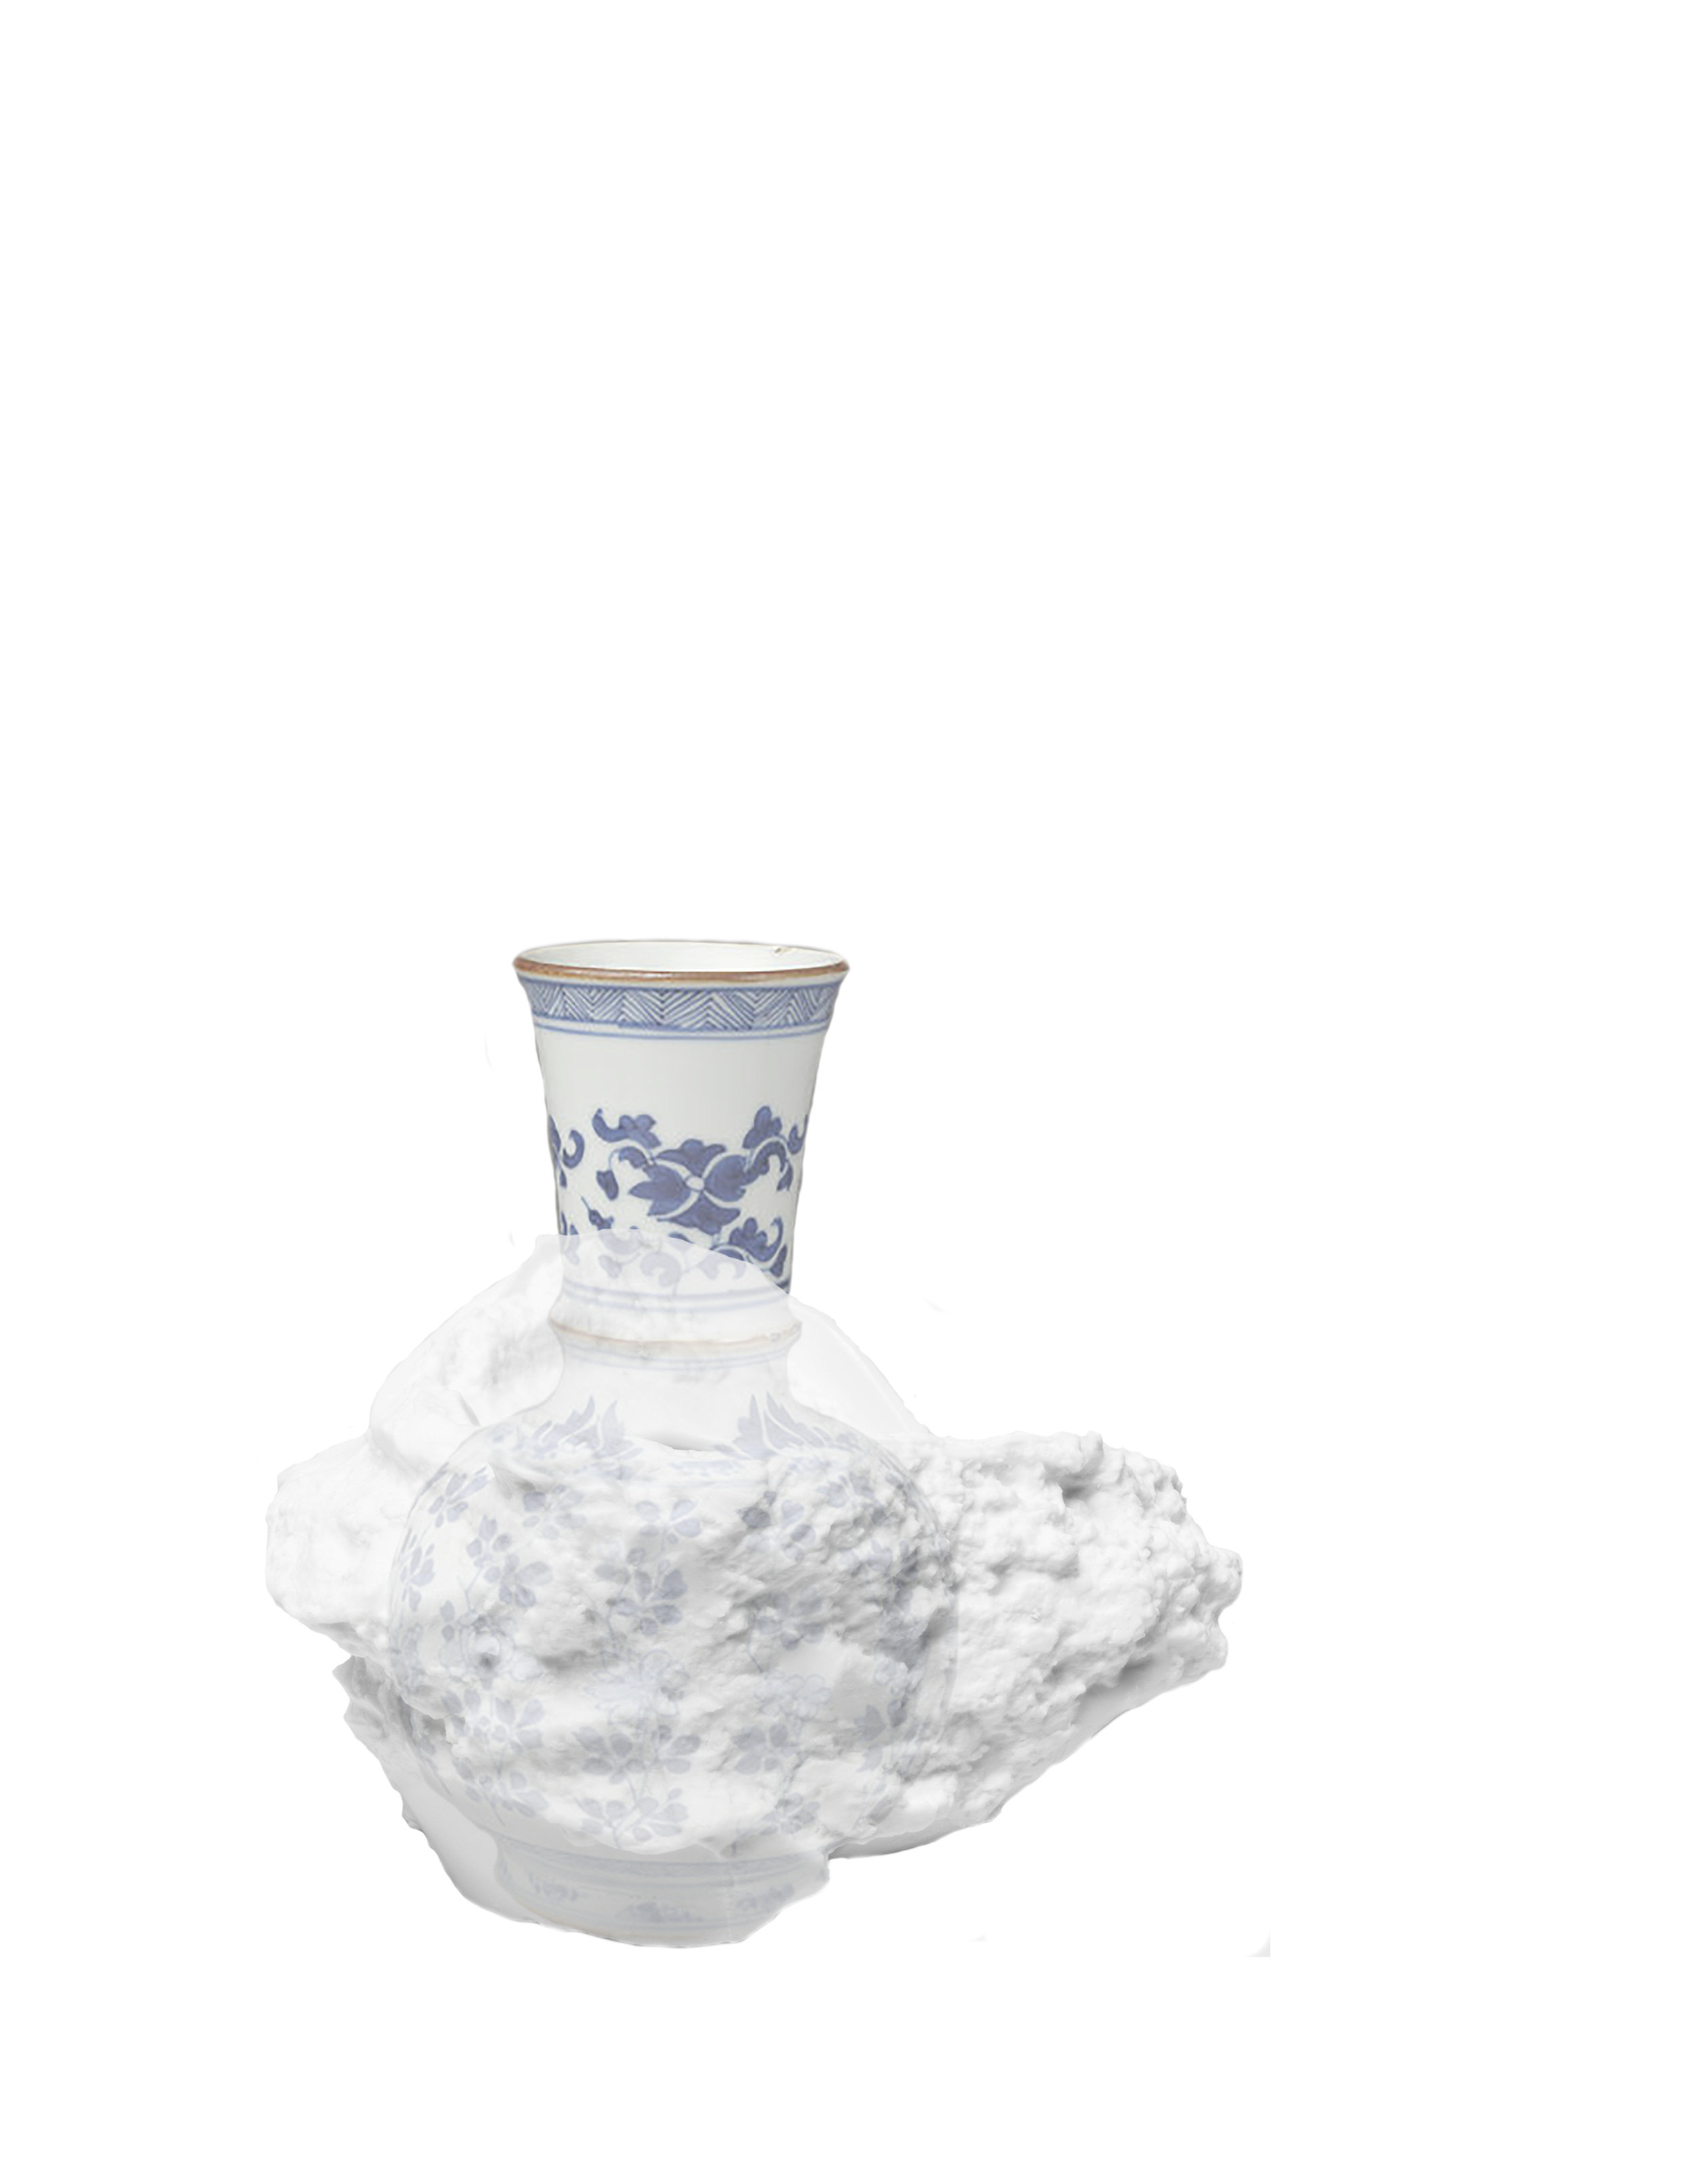 Saggar | Form Series , Digital Print, Ming Dynasty Form overlaid in cast form. 2019  Ming Dynasty collapsed saggar and porcelain forms were collected from various sites around Jingdezhen, China, and moved through the mold making process; cast as thin porcelain versions of their former selves. Shifting form to surface, these objects touch lightly towards ideas related to dislocation, longing, and the inescapable potential of the cast off. Collapsing time and place, their glazed interiors seek to reanimate the objects as functional vessels of the present.